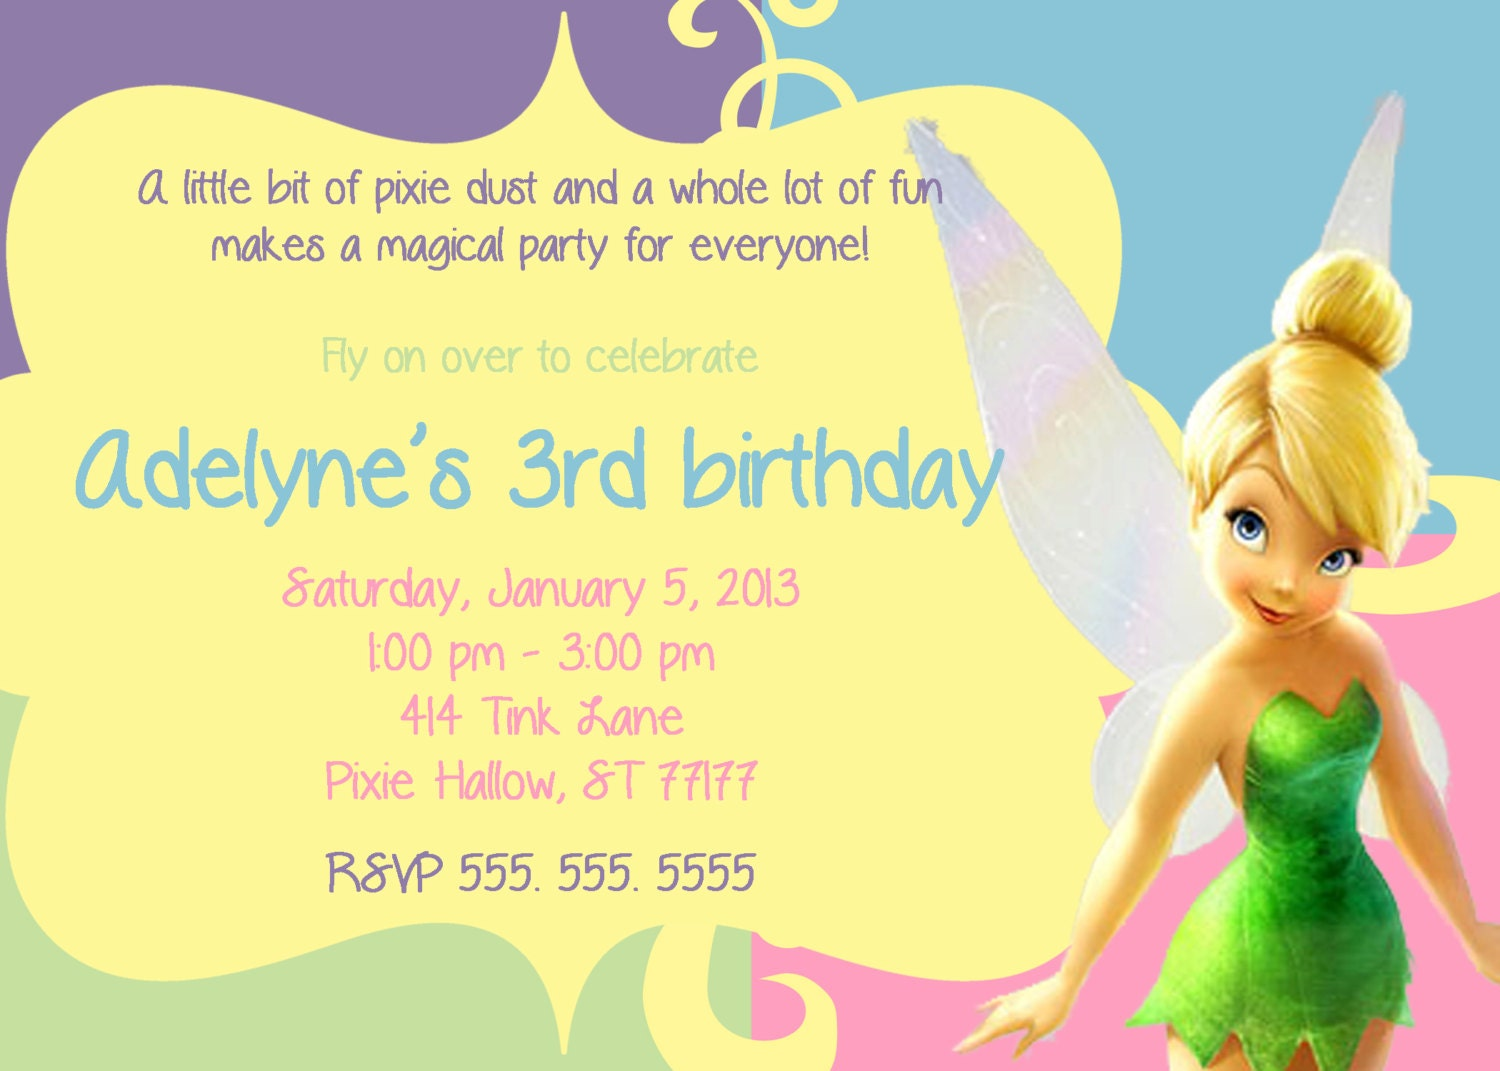 Free Birthday Invite Templates is perfect invitations example